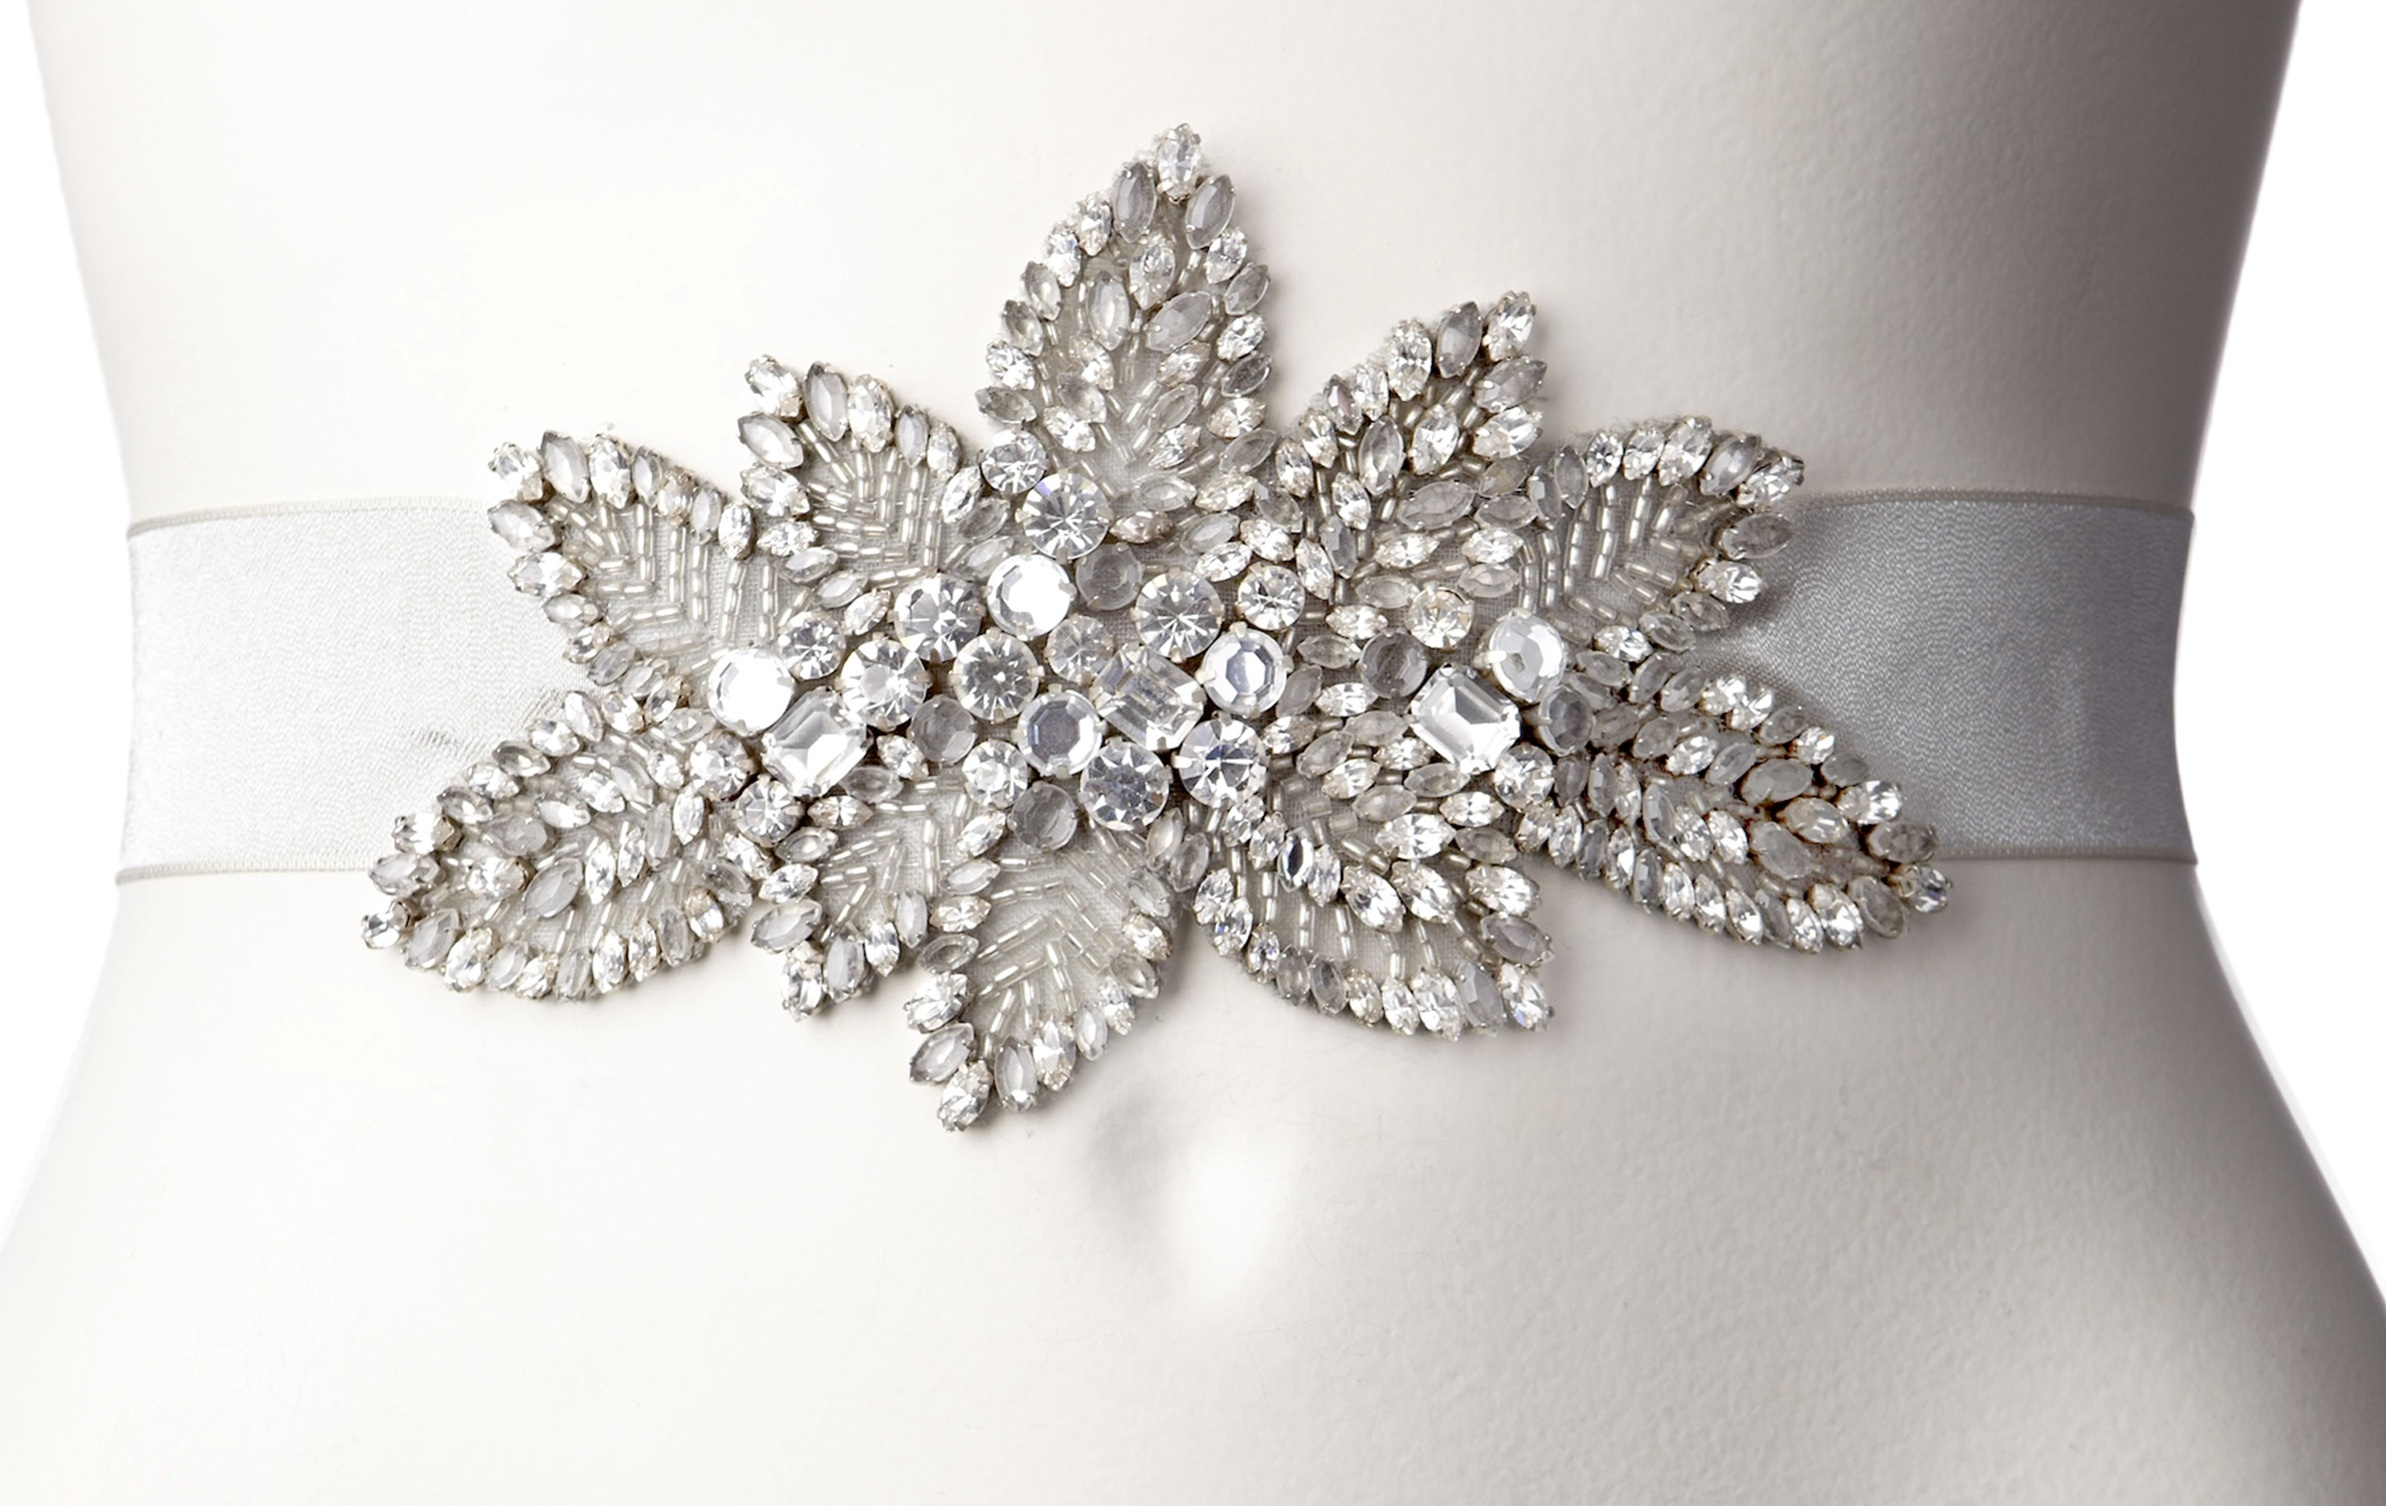 Jenny packham wedding accessories spring 14 bridal for Where to buy wedding accessories